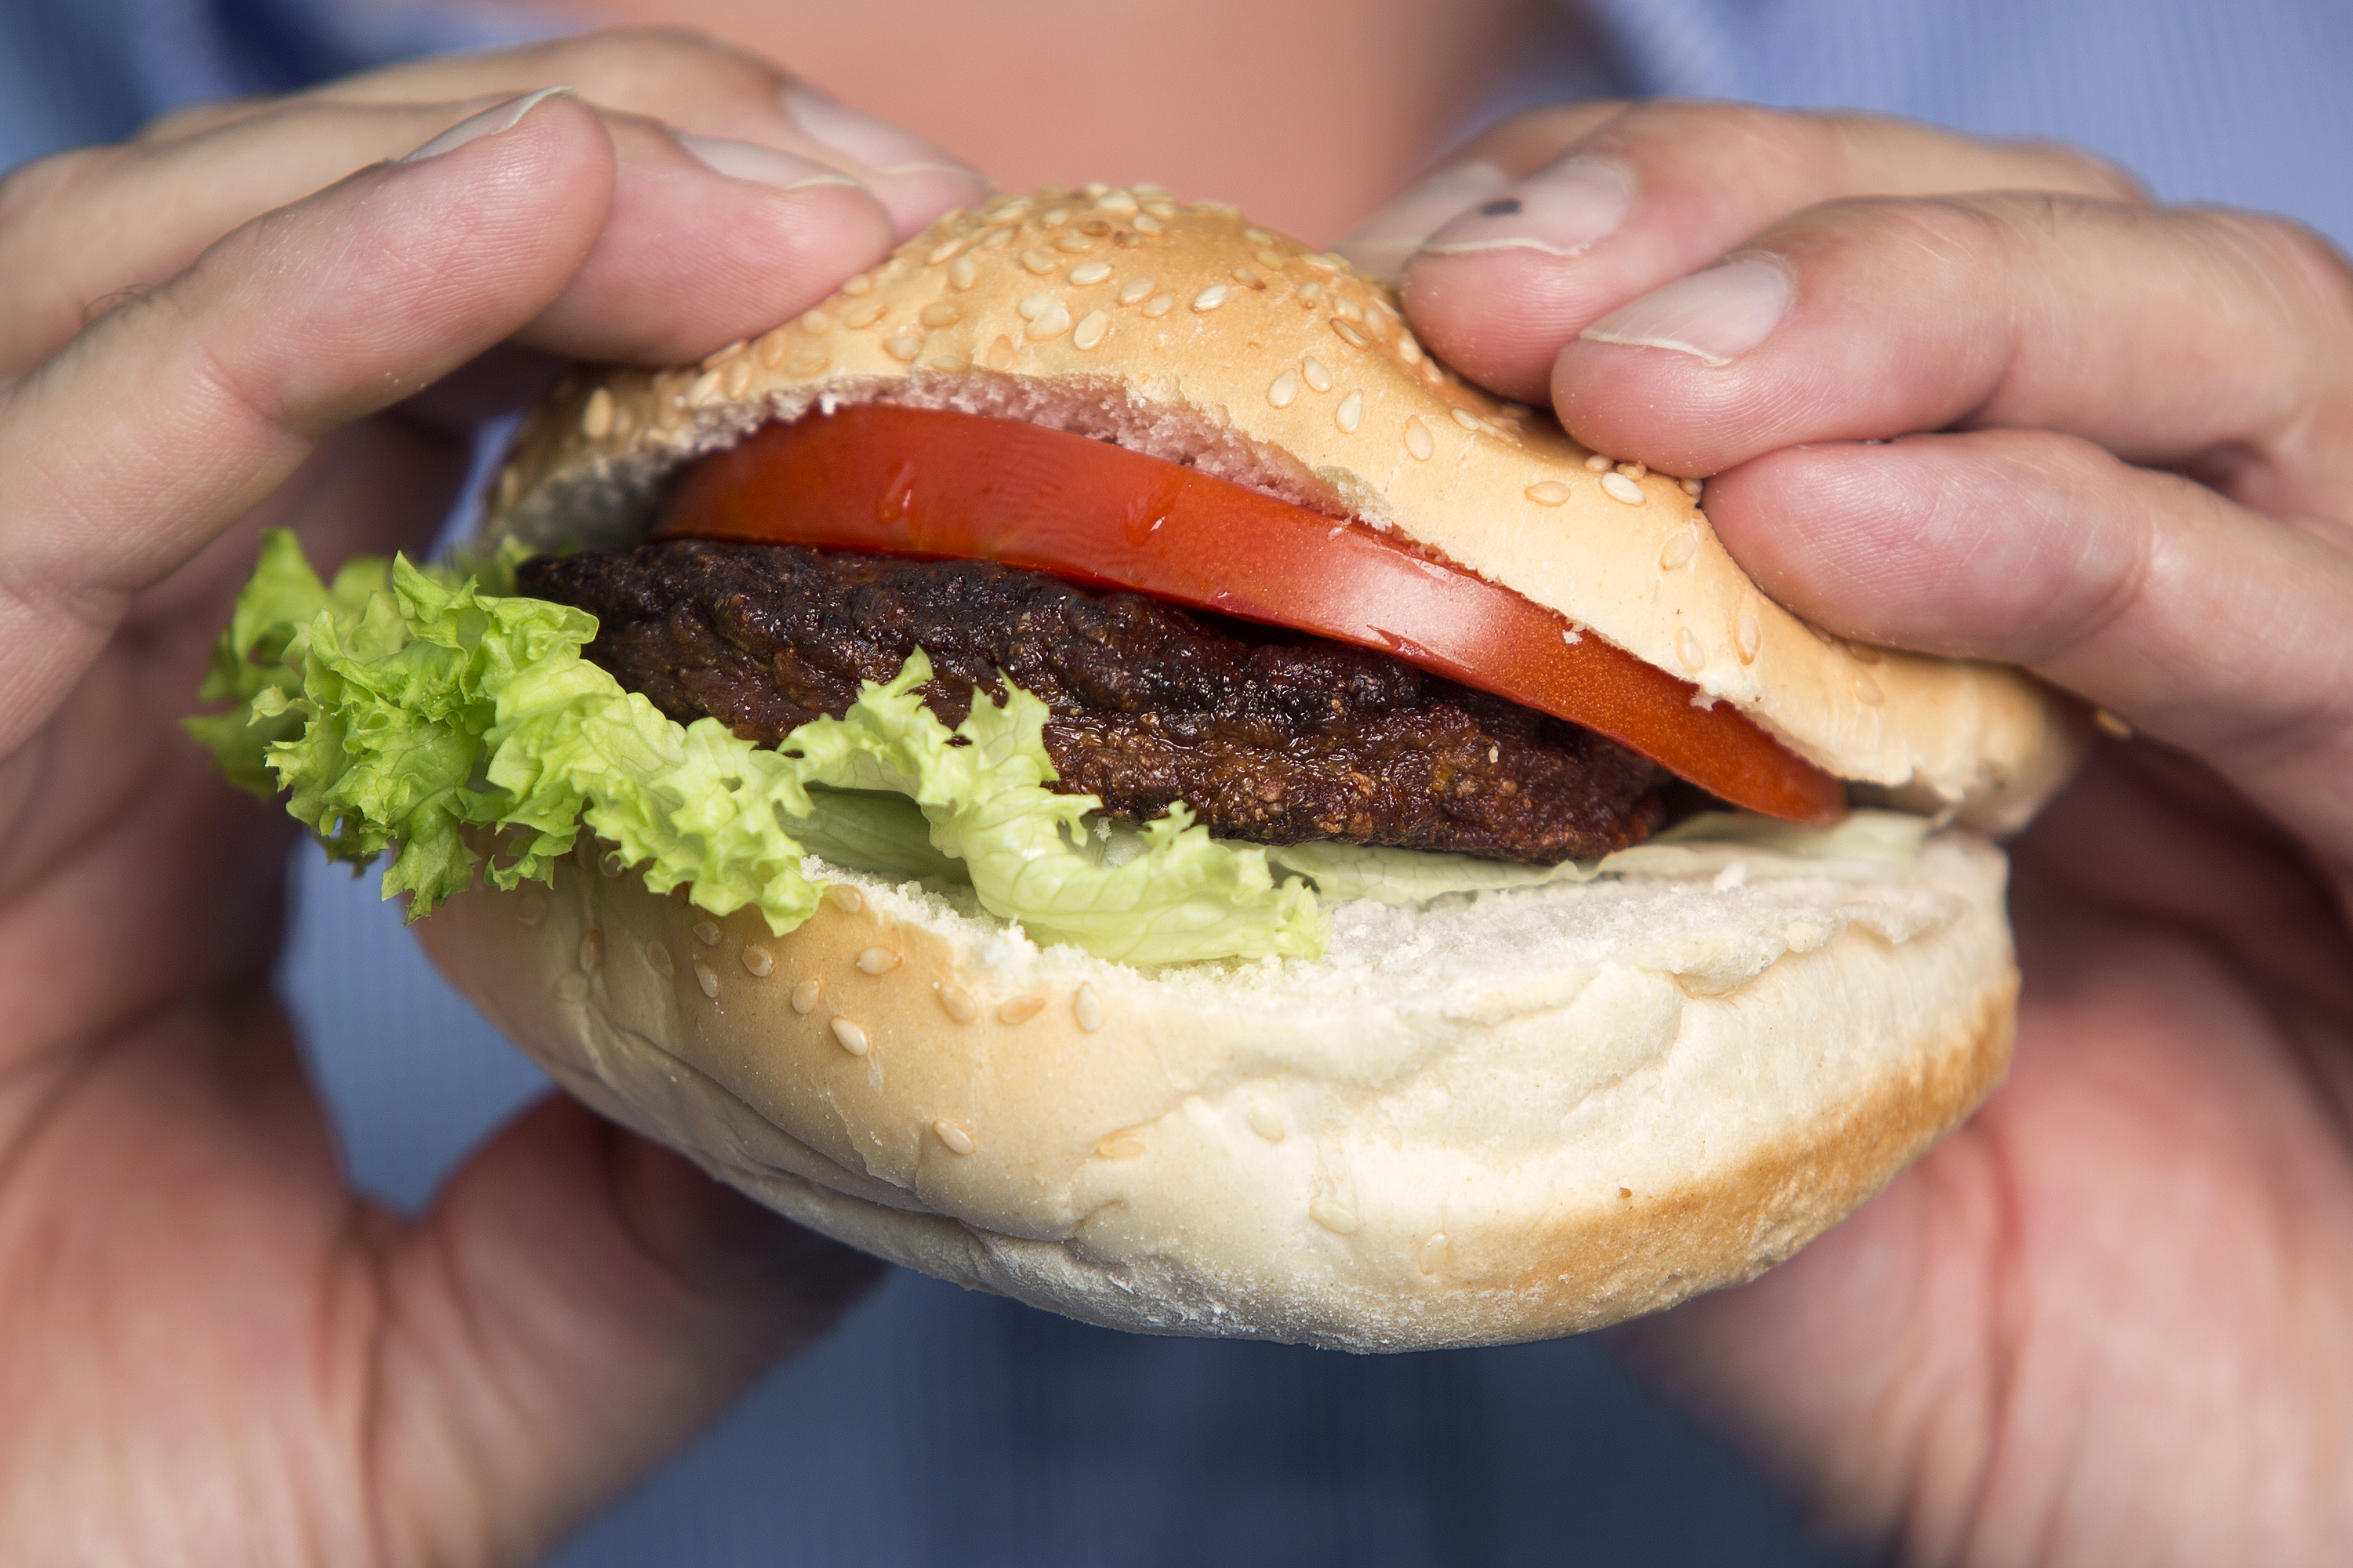 A beef burger created by stem cells harvested from a living cow is held for a photograph by Mark Post, a Dutch scientist, following a Bloomberg Television interview in London, U.K., on Tuesday, Aug. 6, 2013.